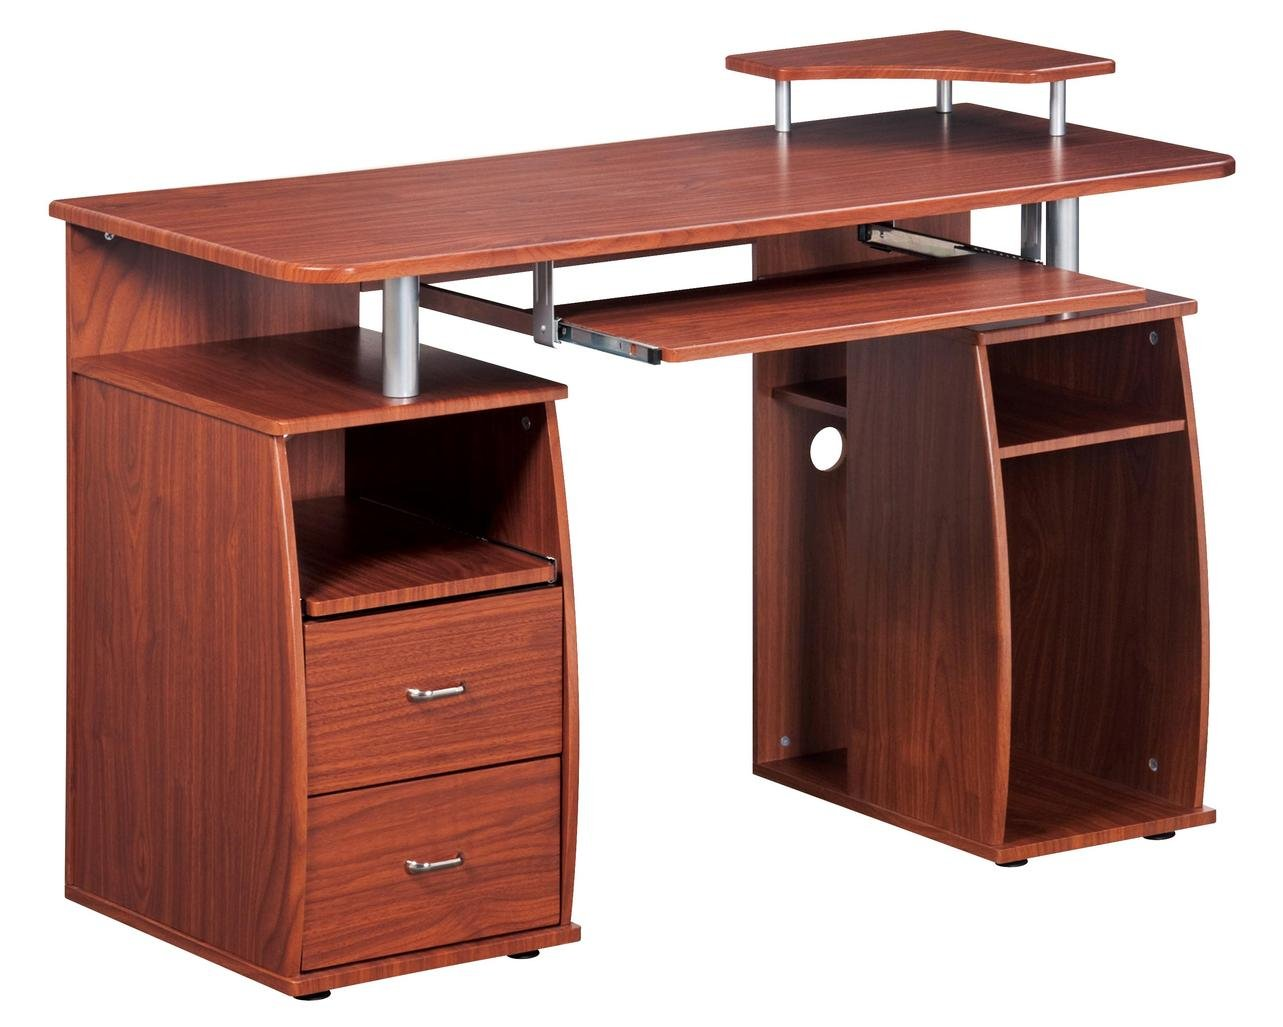 Complete Computer Workstation Desk With Storage. Color: Mahogany by Techni Mobili